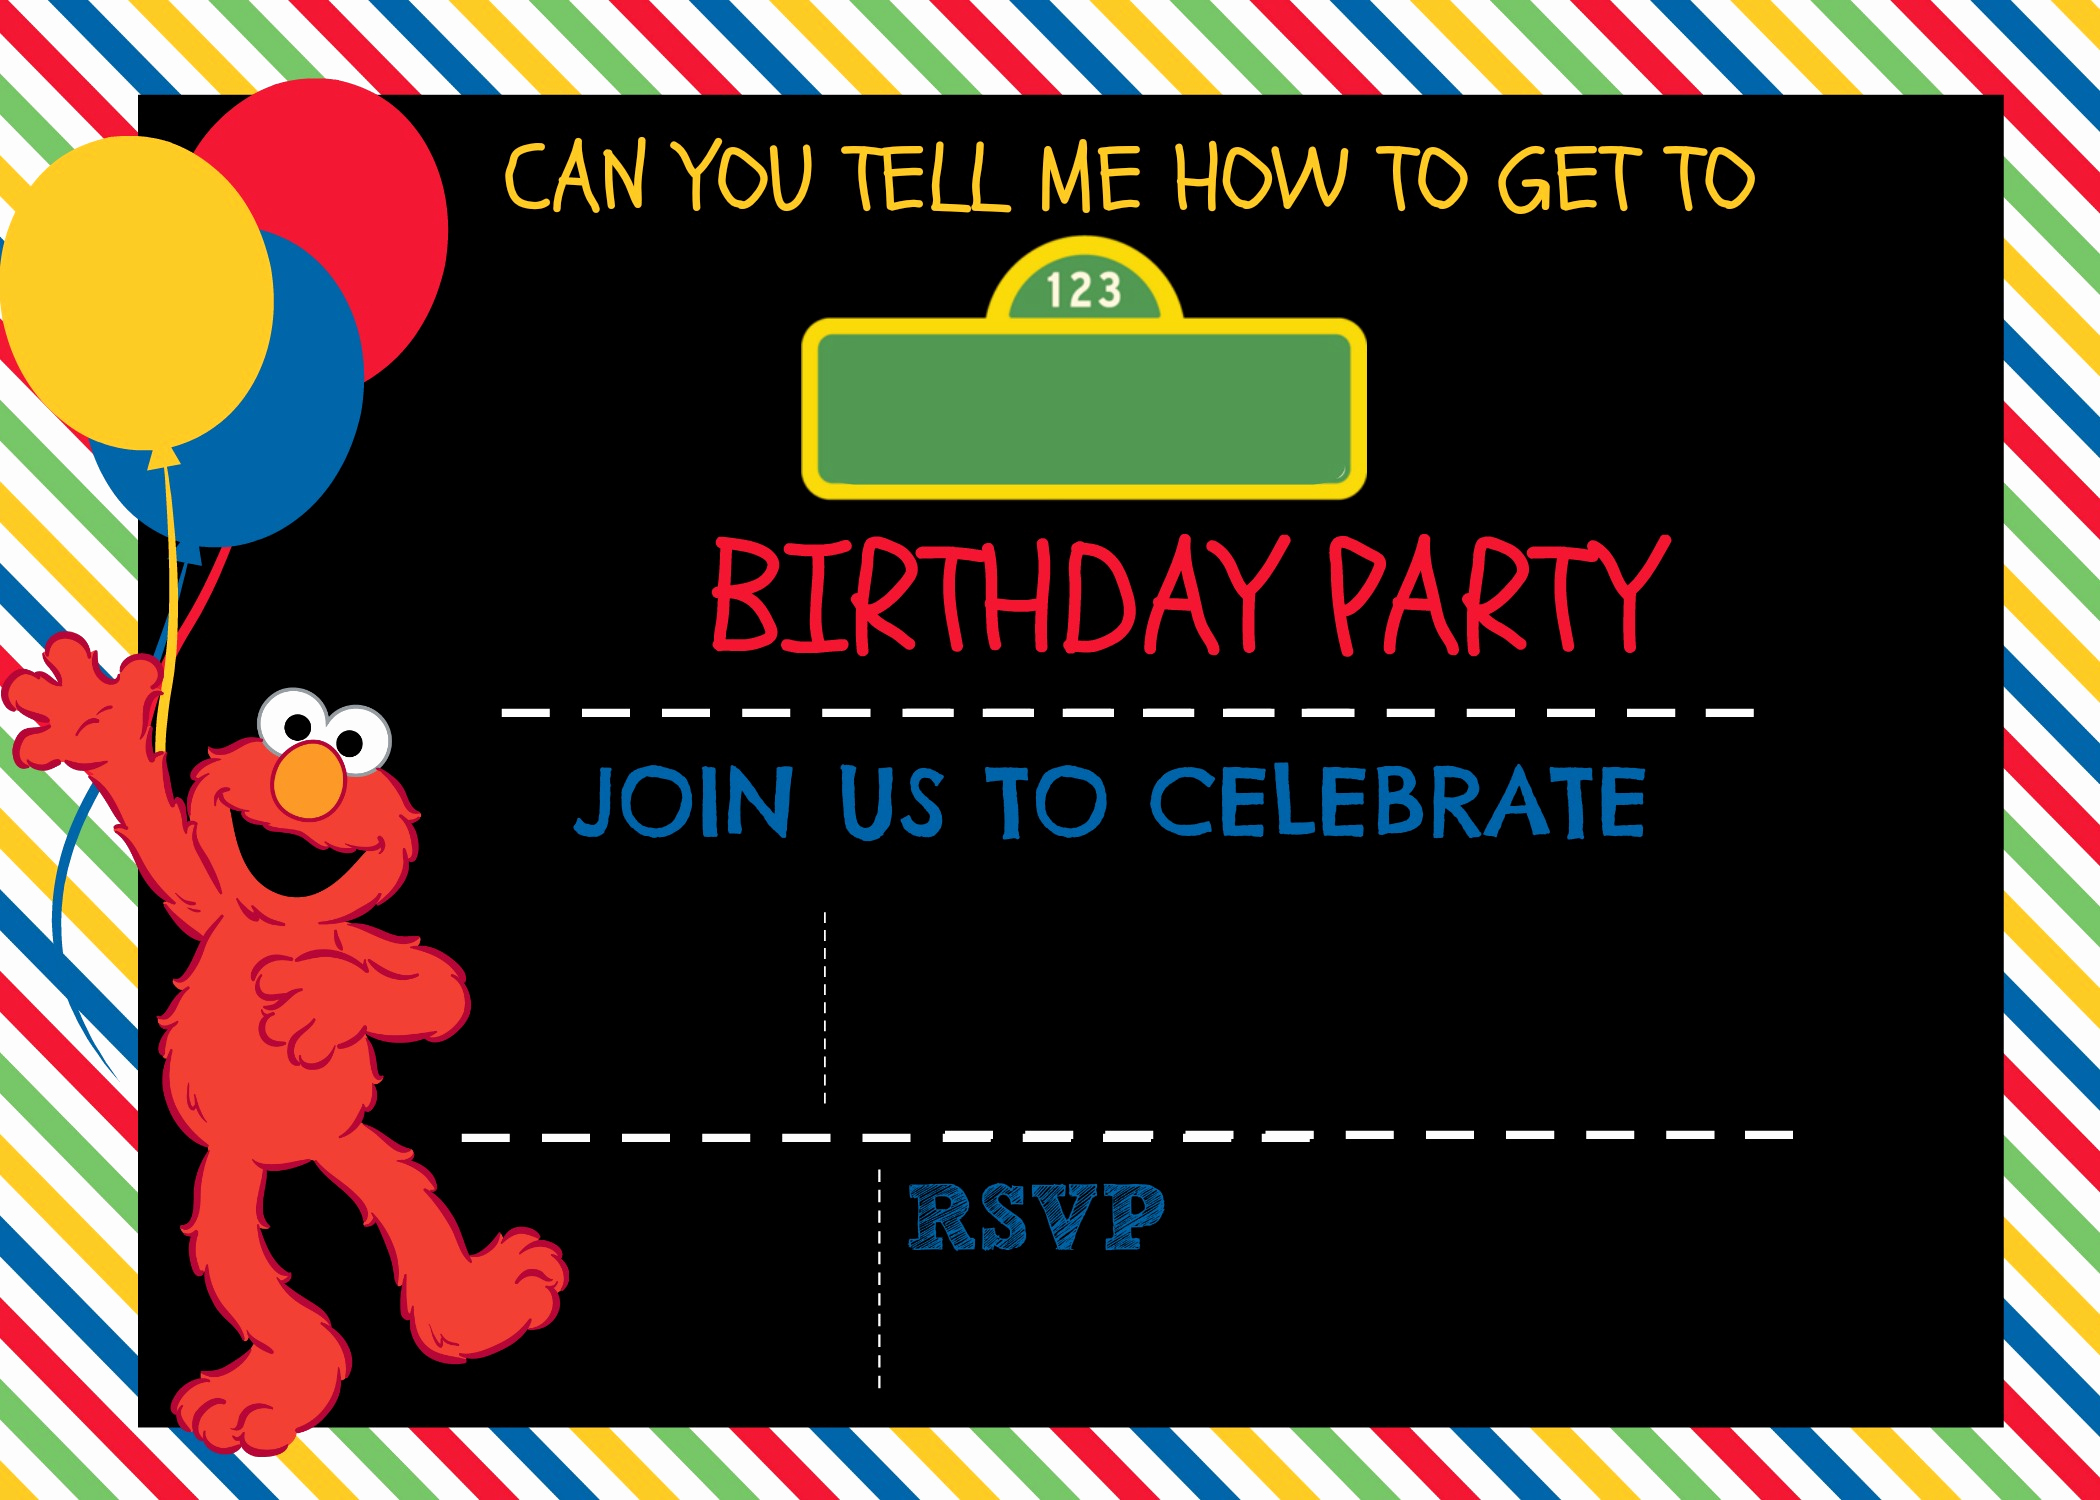 Sesame Street Invitation Template Free Luxury How to Make A Sesame Street Digital Invitation